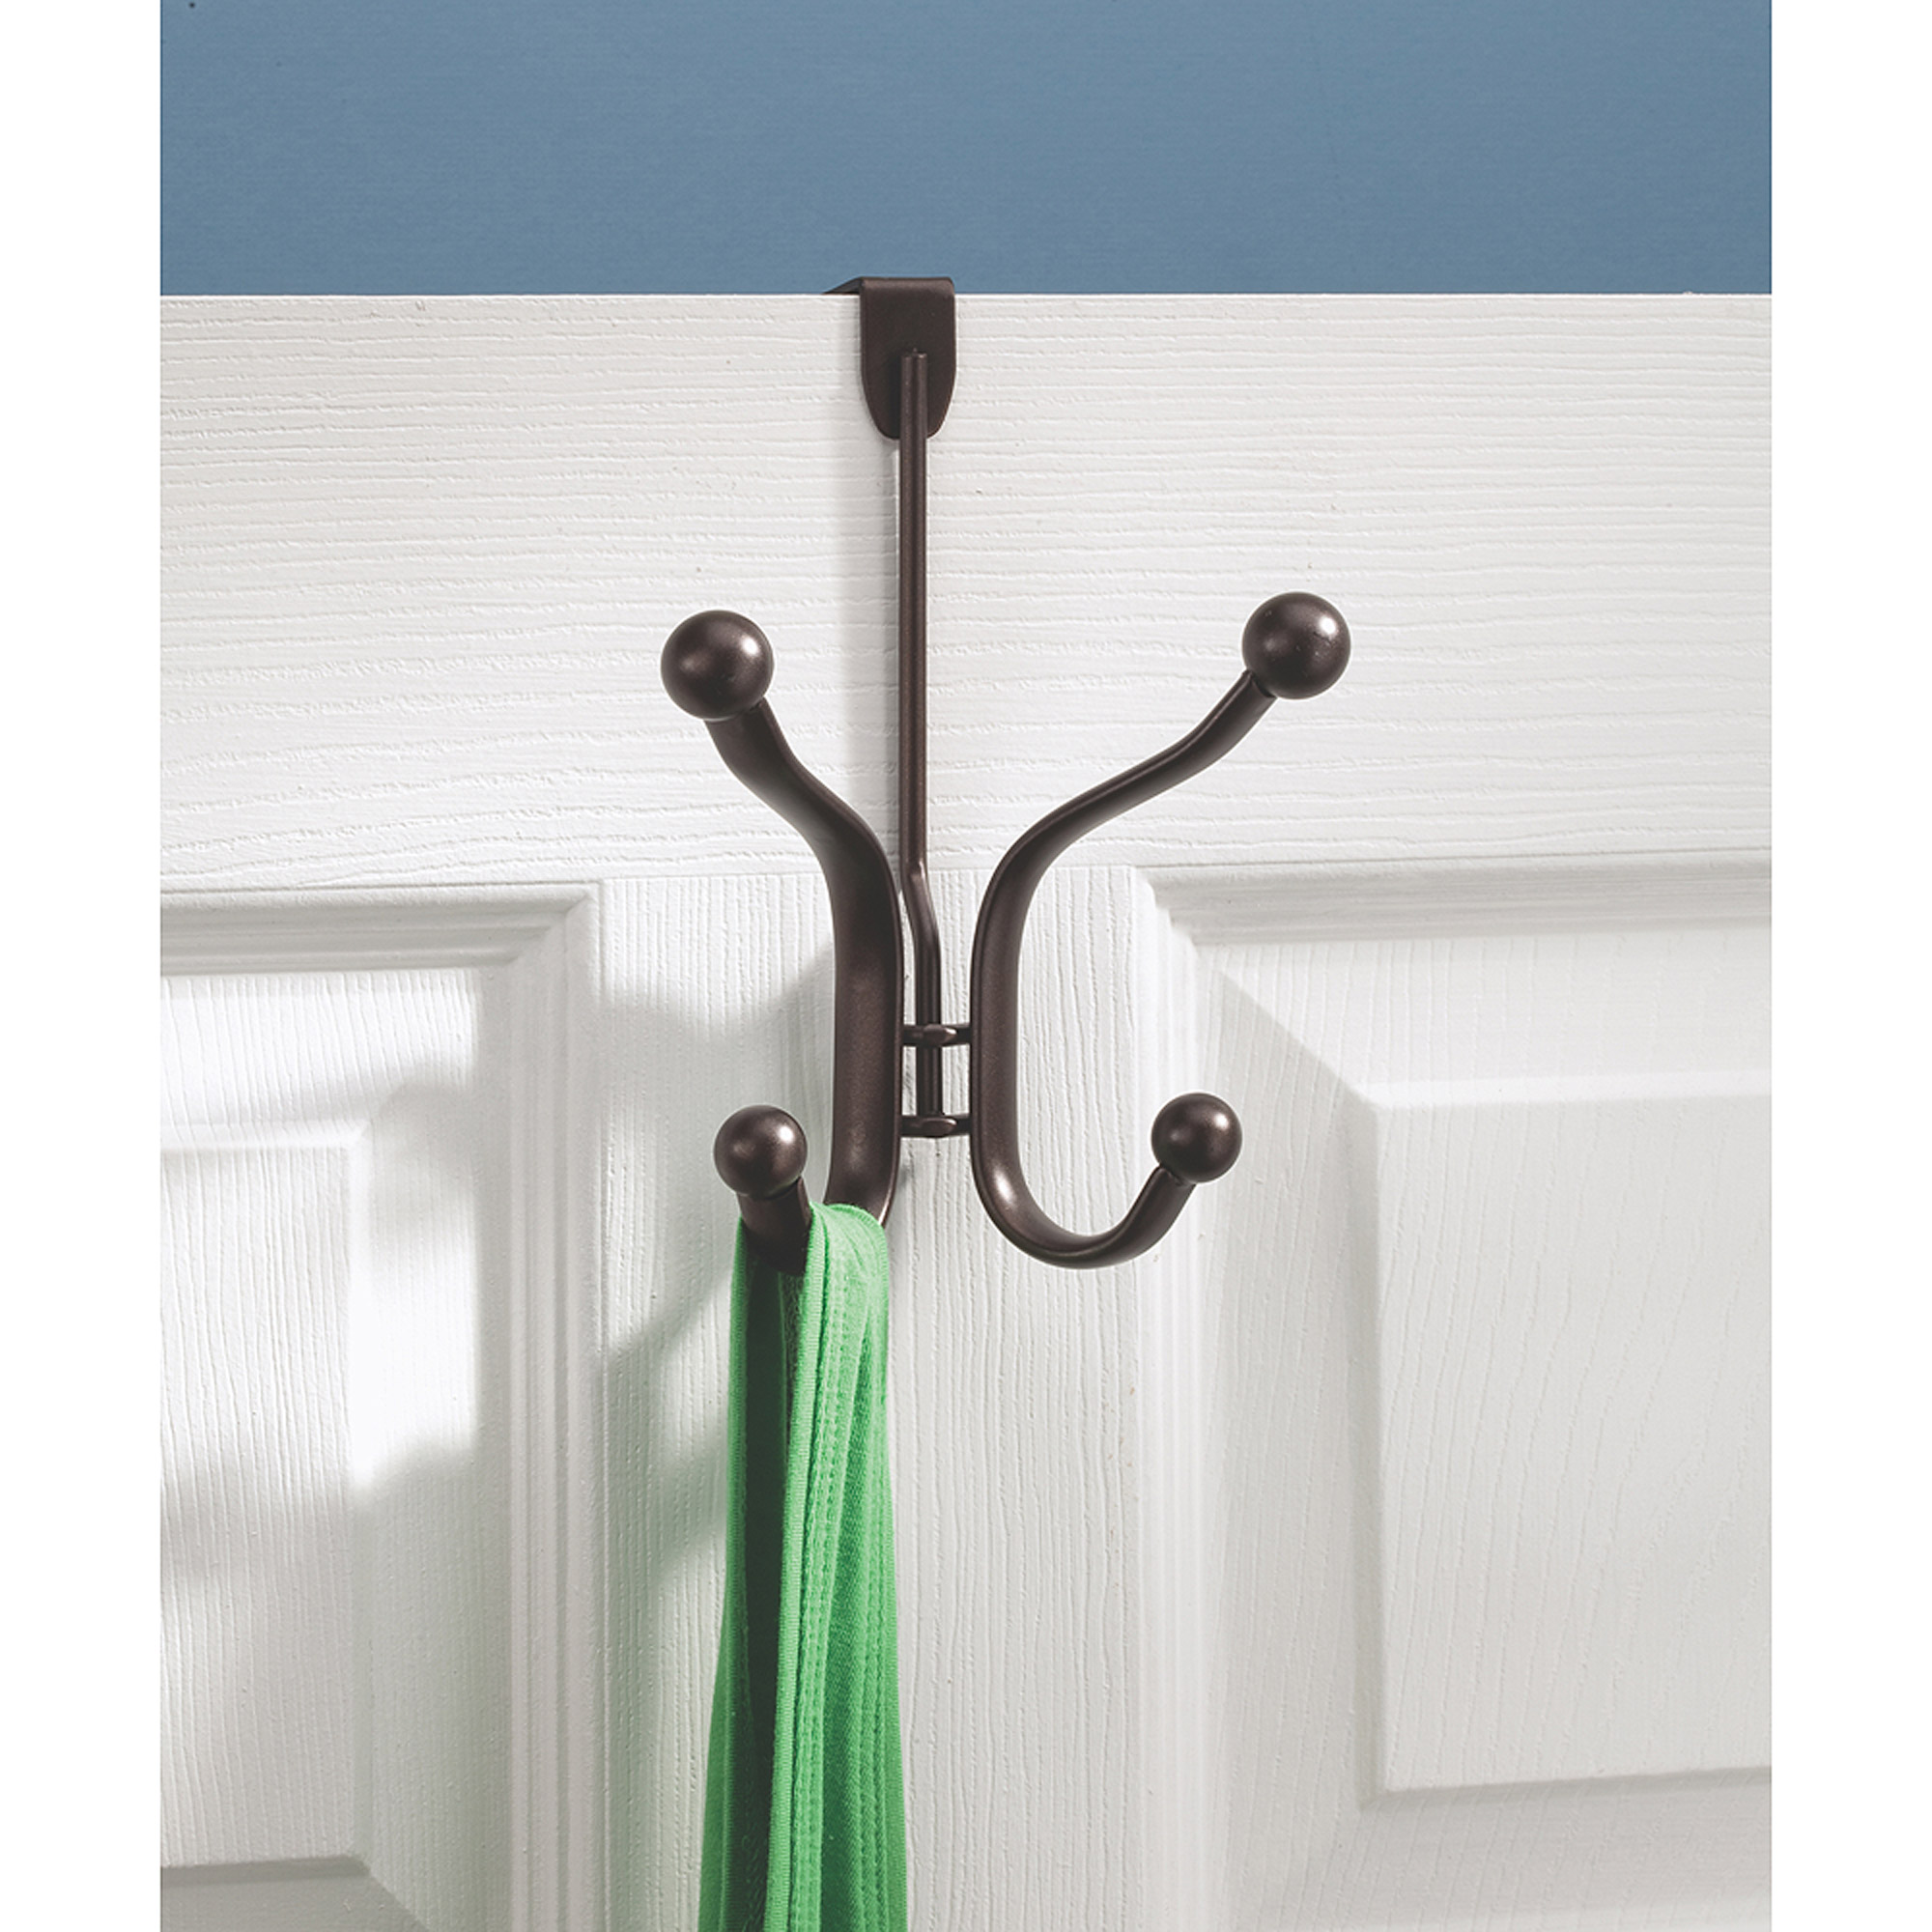 InterDesign Axis Over-the-Door Quad Hook